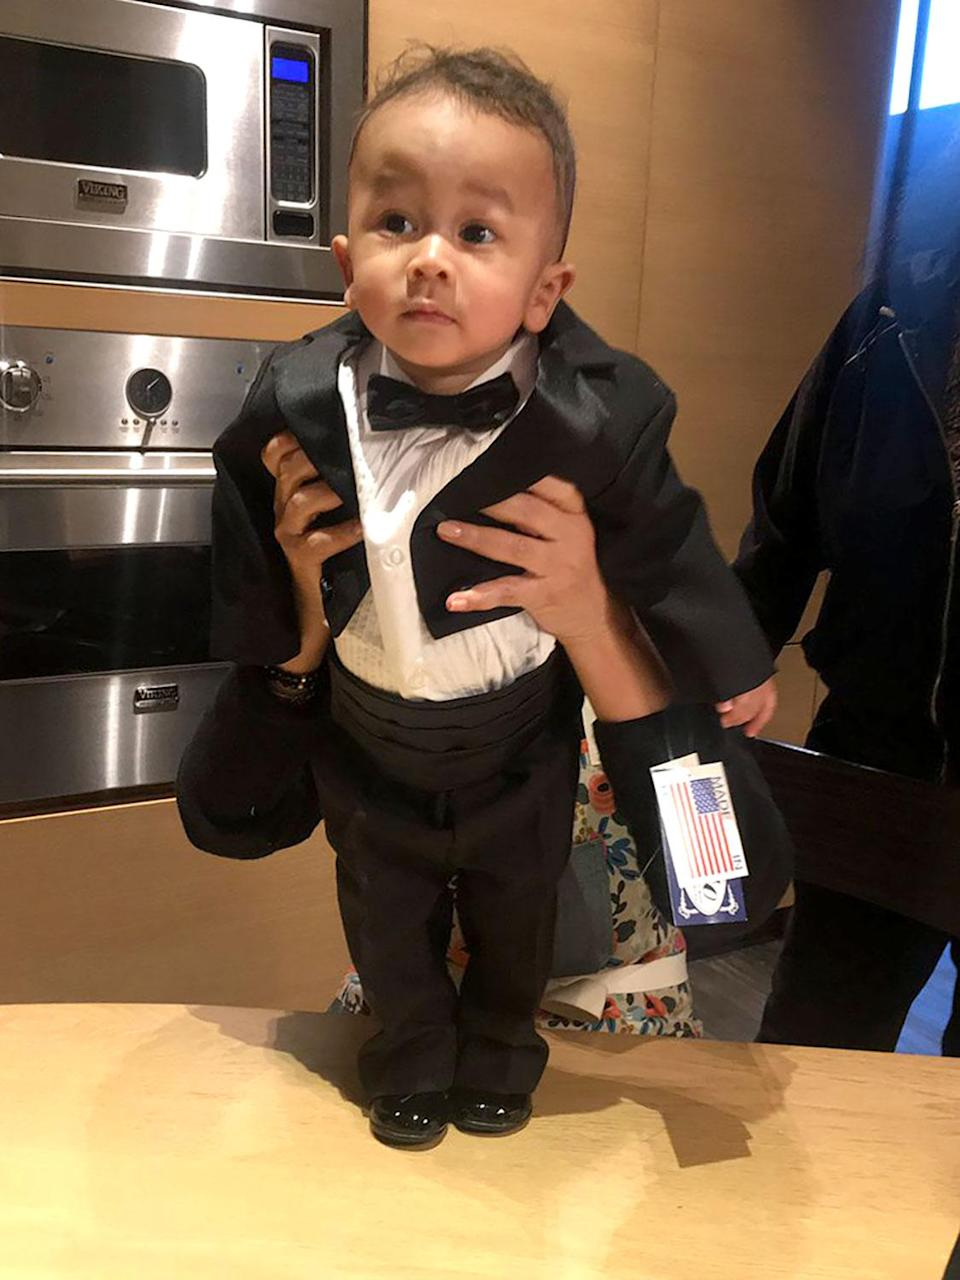 Chrissy Teigen Shares Photos of Son Miles Wearing Tuxedos